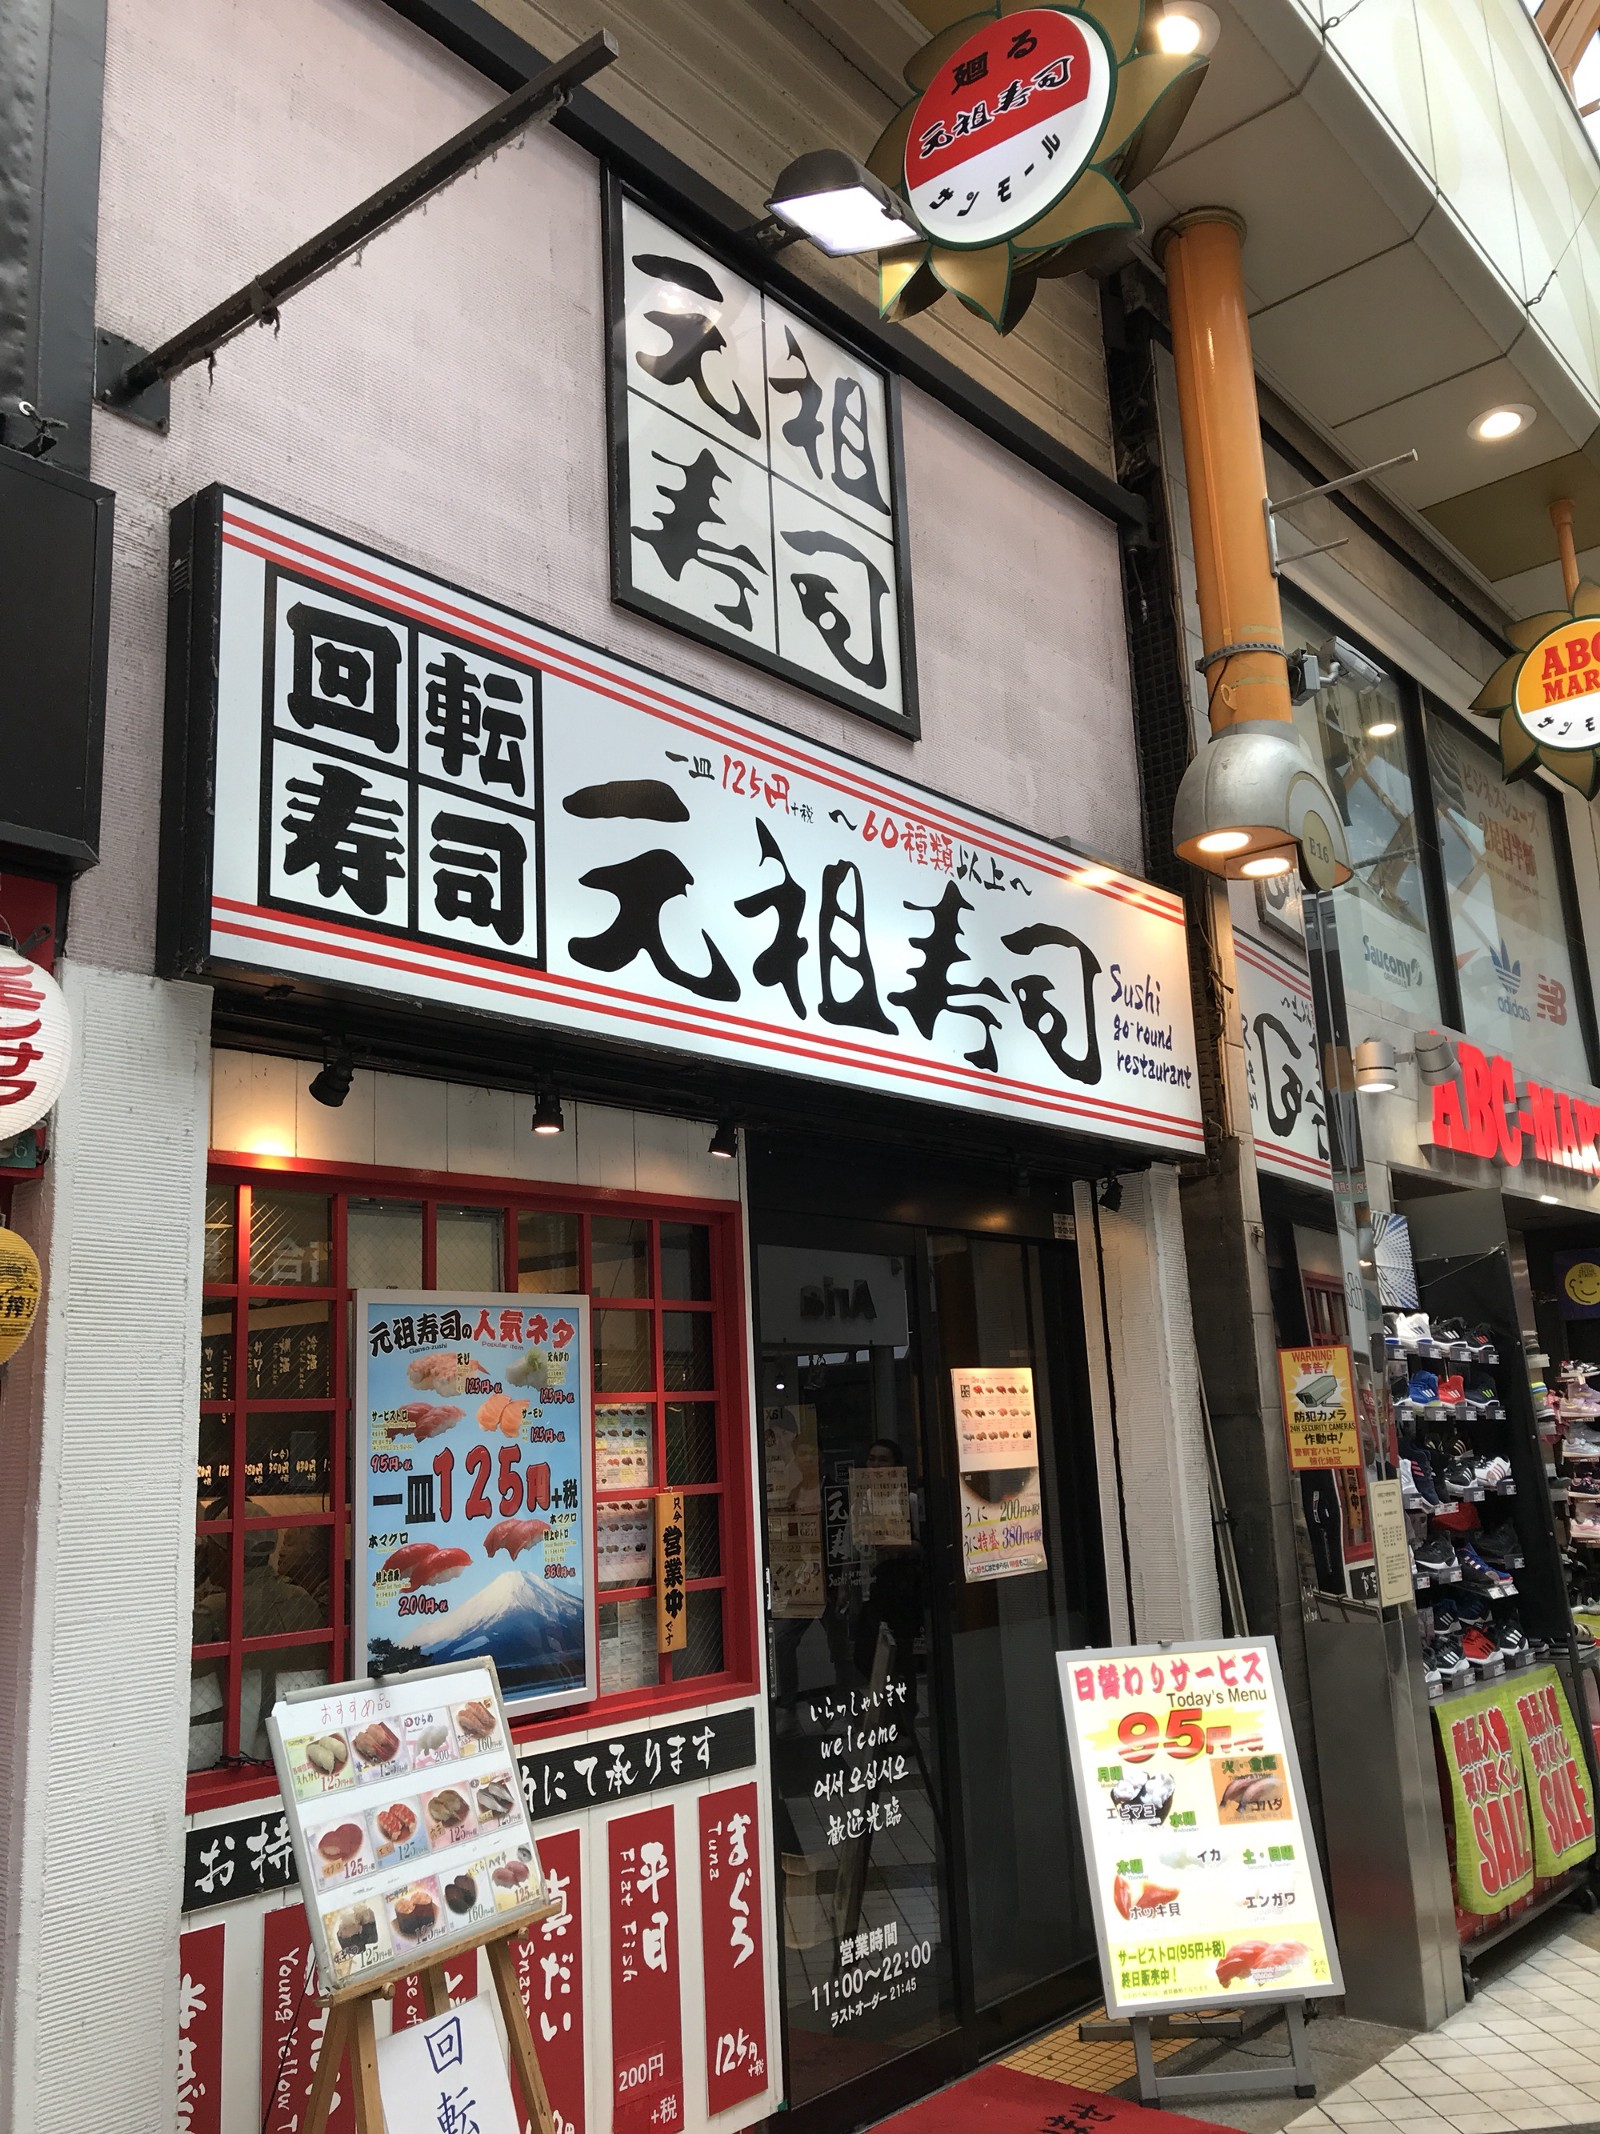 Nakano Broadway: Another Mecca for Japanese Pop and Sub